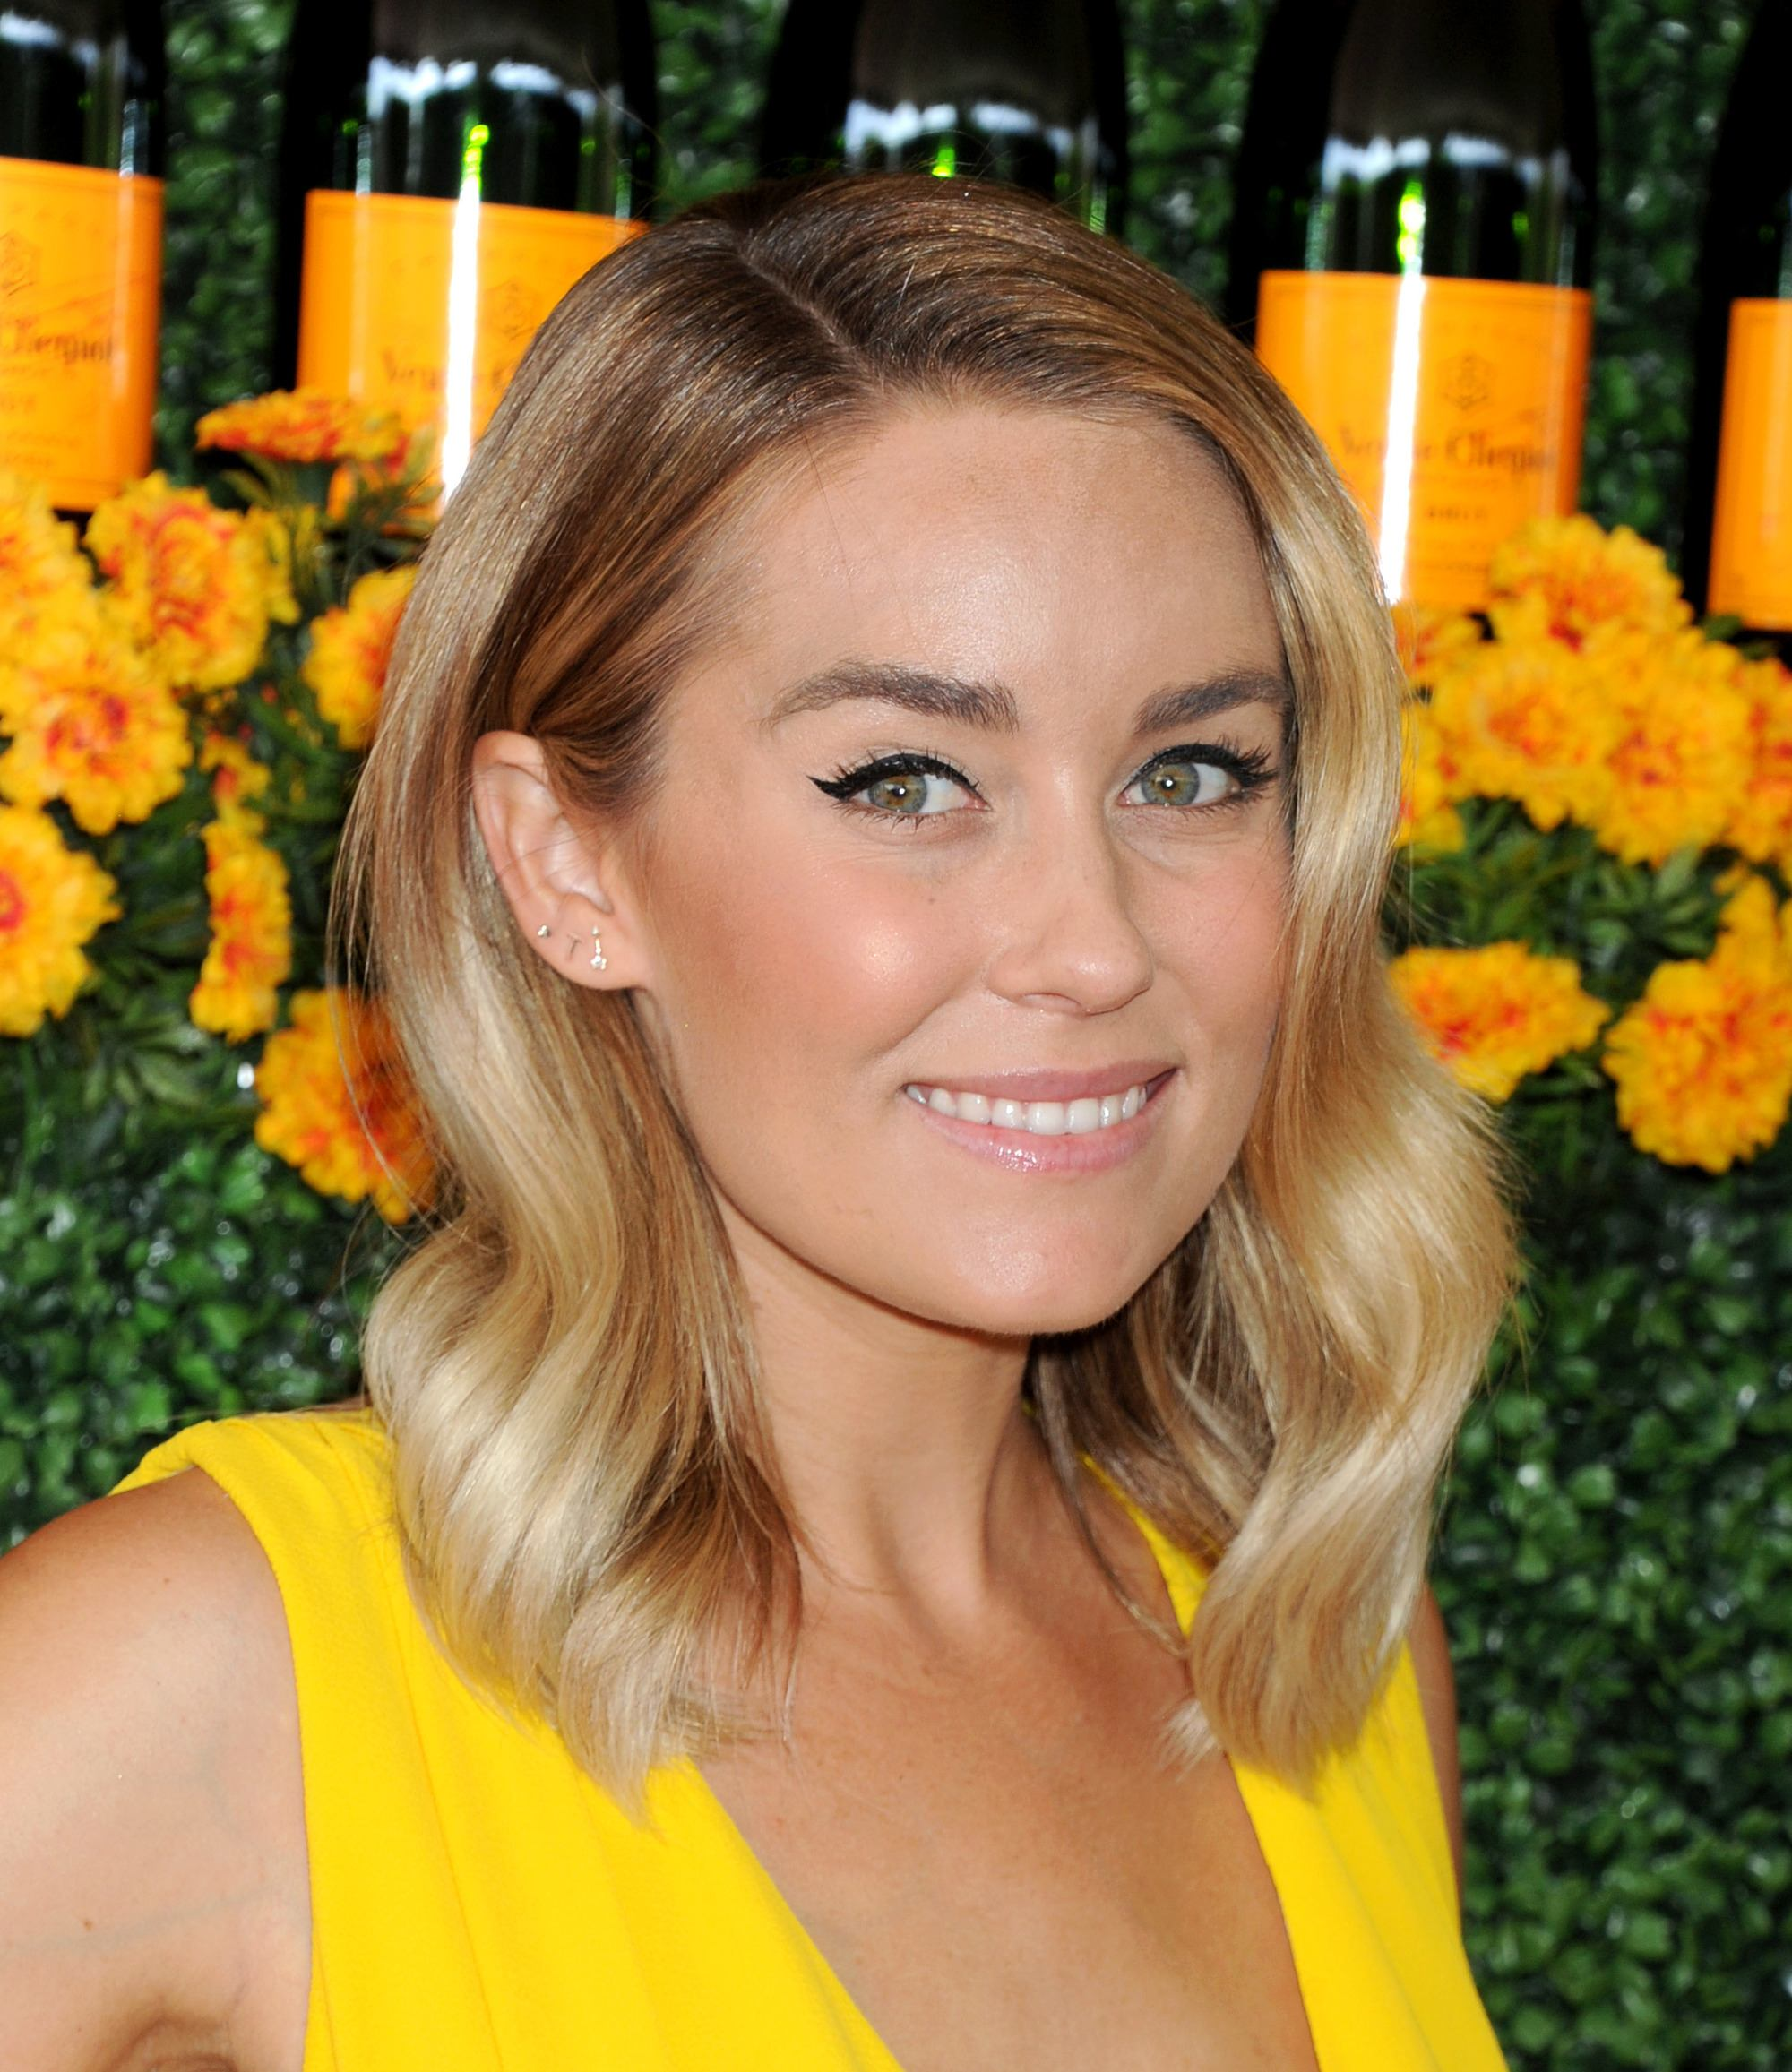 Flat iron hairstyles: Lauren Conrad with a blonde long bob with side parting and loose hollywood waves